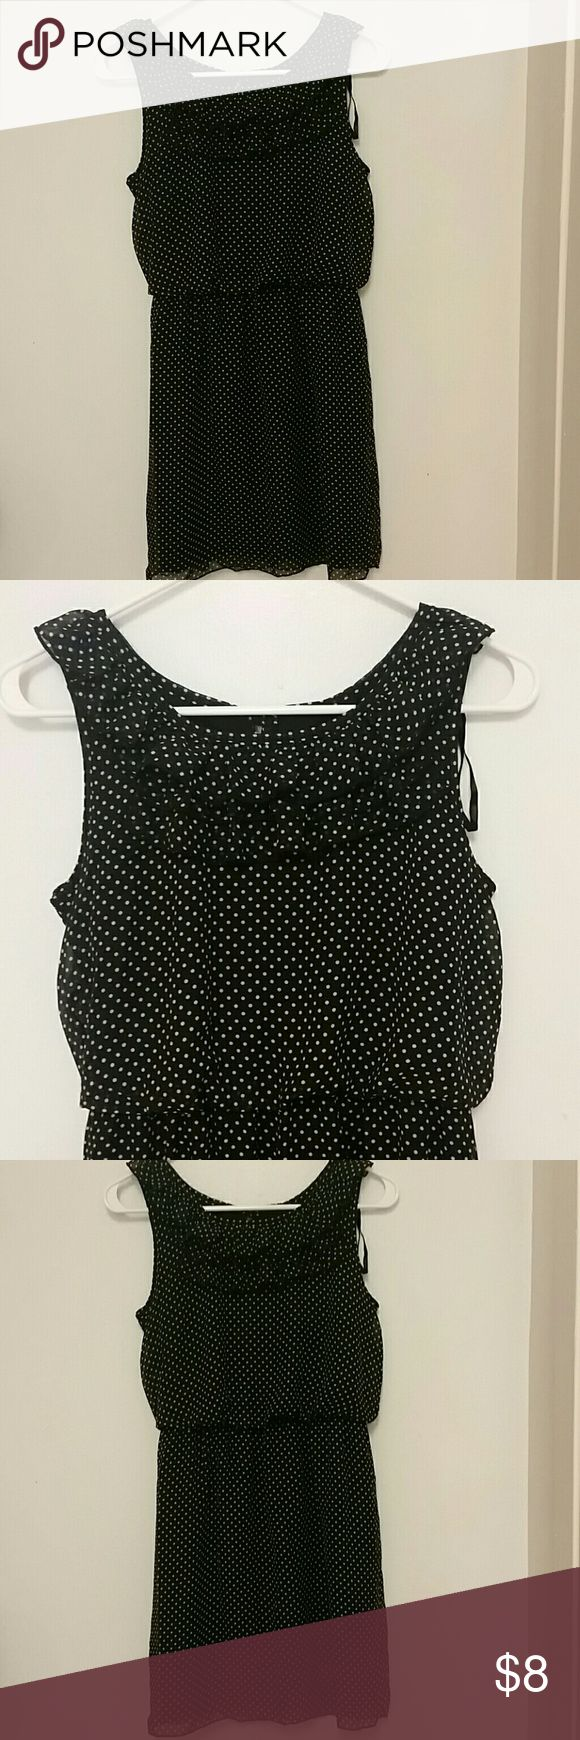 "Sweet Stirm Dress Polka dot dress with peep hole in back , button for closure 3 ruffles in front , soft and flowing with elastic waist.the material is 100% polyester , the measurements are 16"" across chest and 25"" from arm pit to hem!!!!build in slip. Really cute! Dresses Midi"